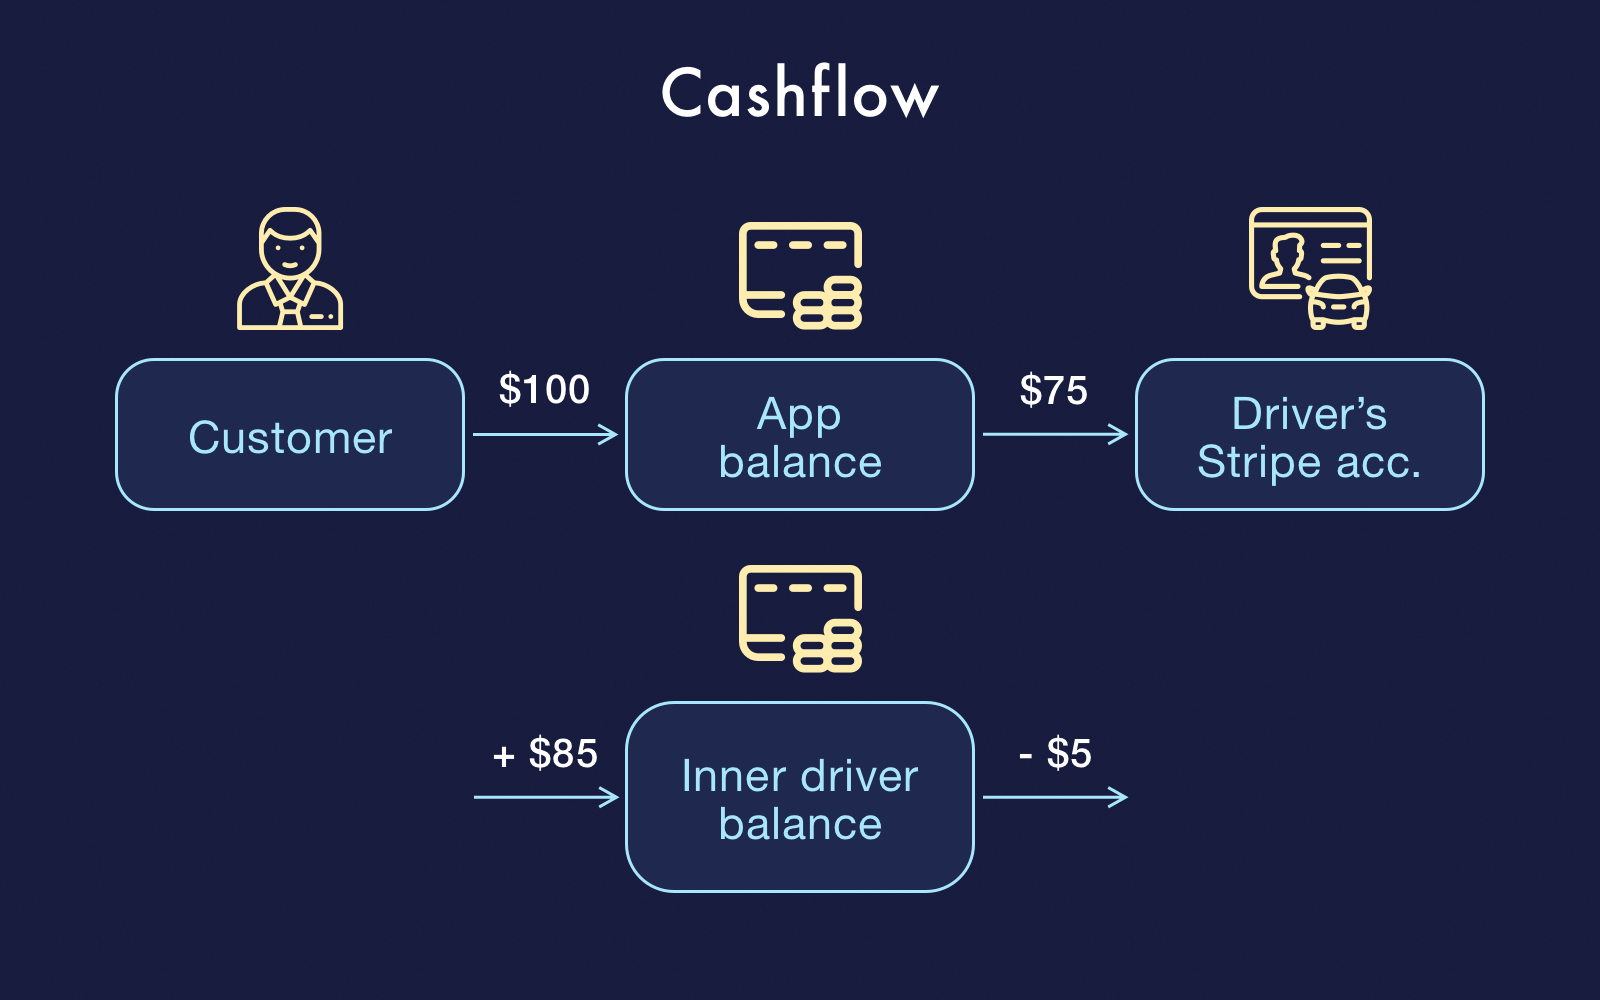 Cashflow for the second example